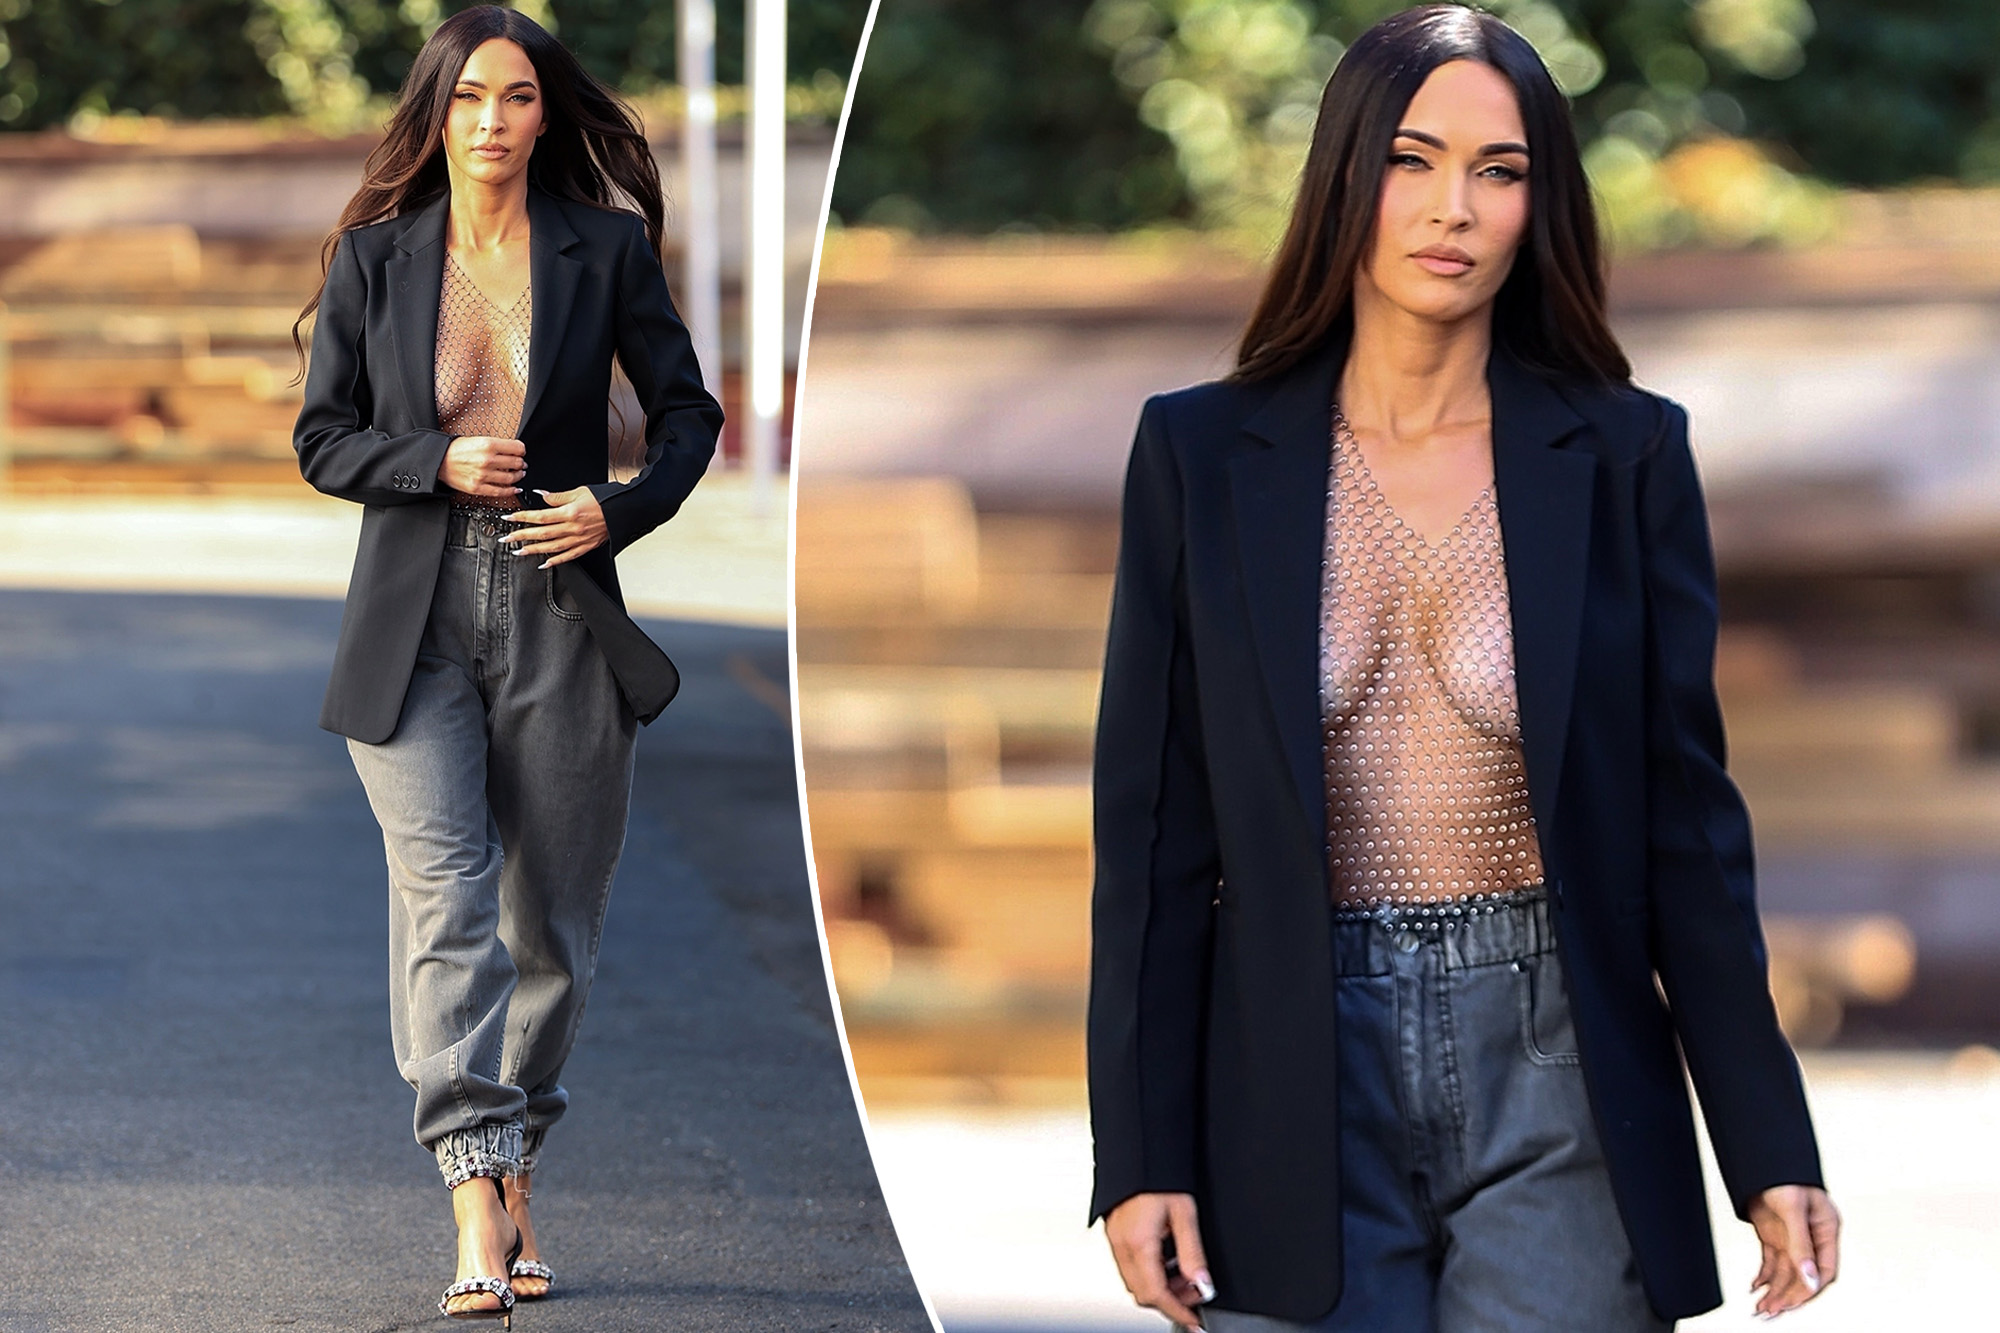 megan-fox-stuns-in-open-blazer-with-nothing-underneath-during-outing